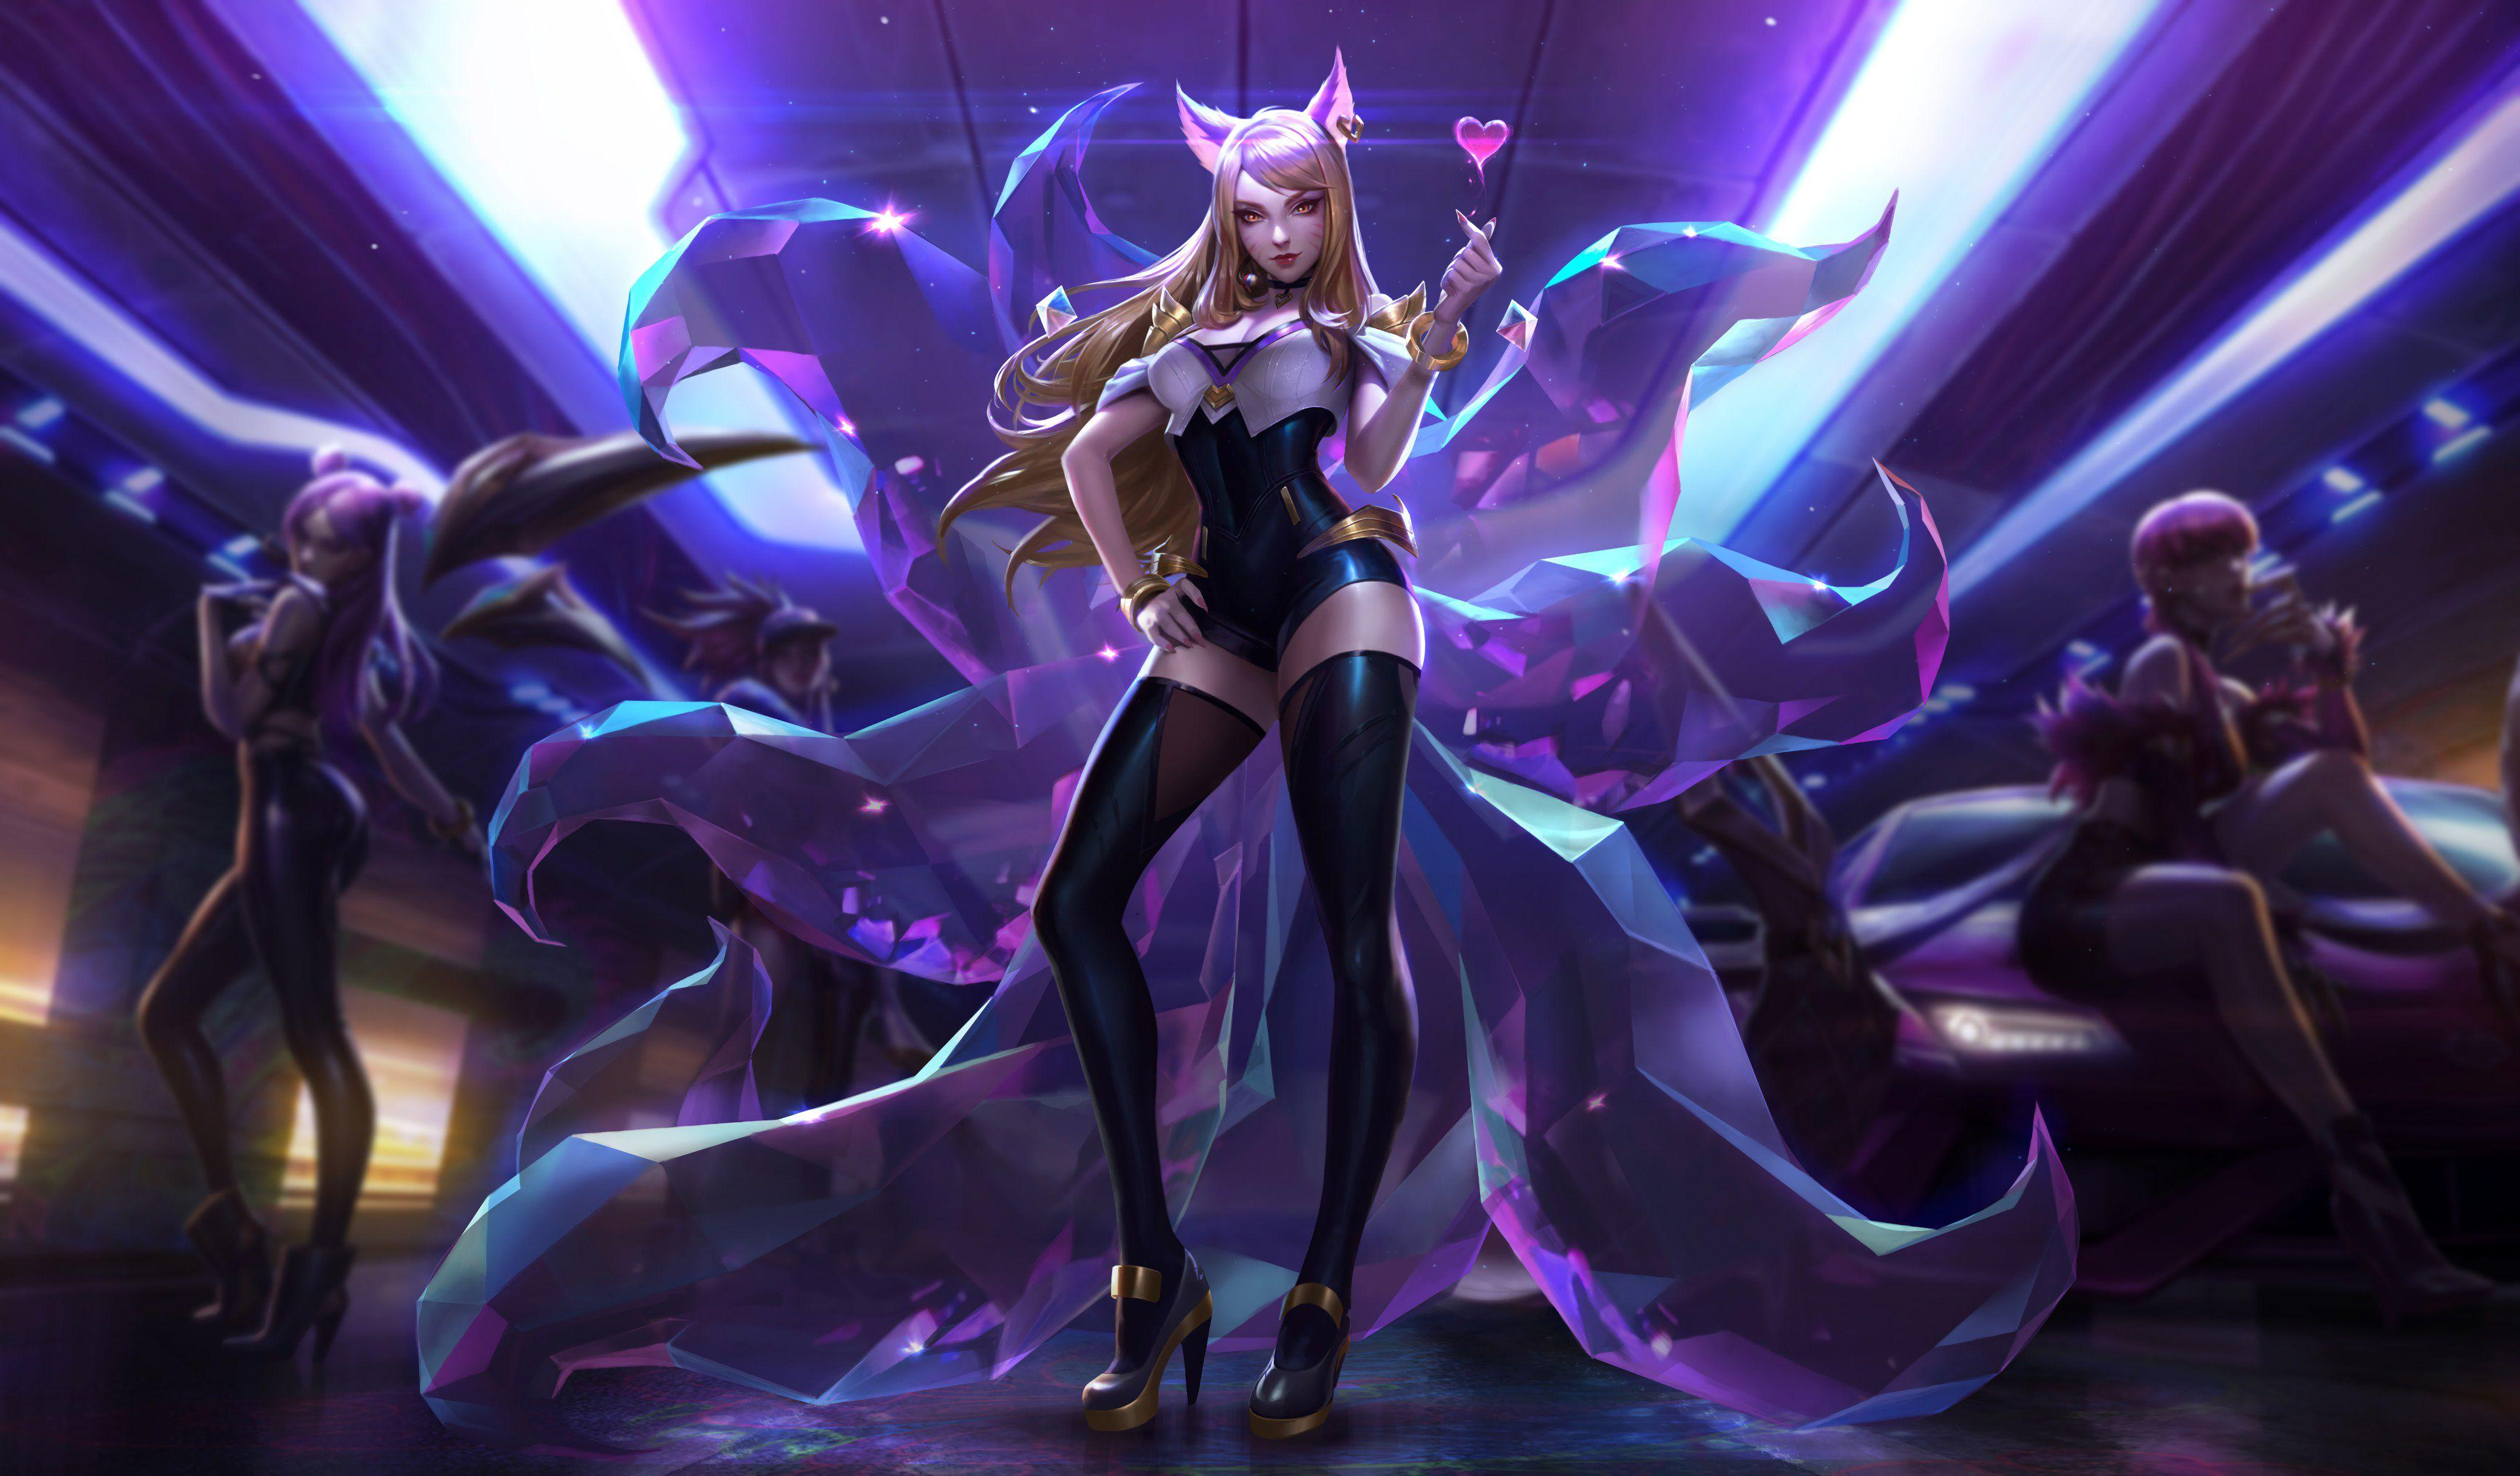 K Da Ahri Wallpapers Wallpaper Cave